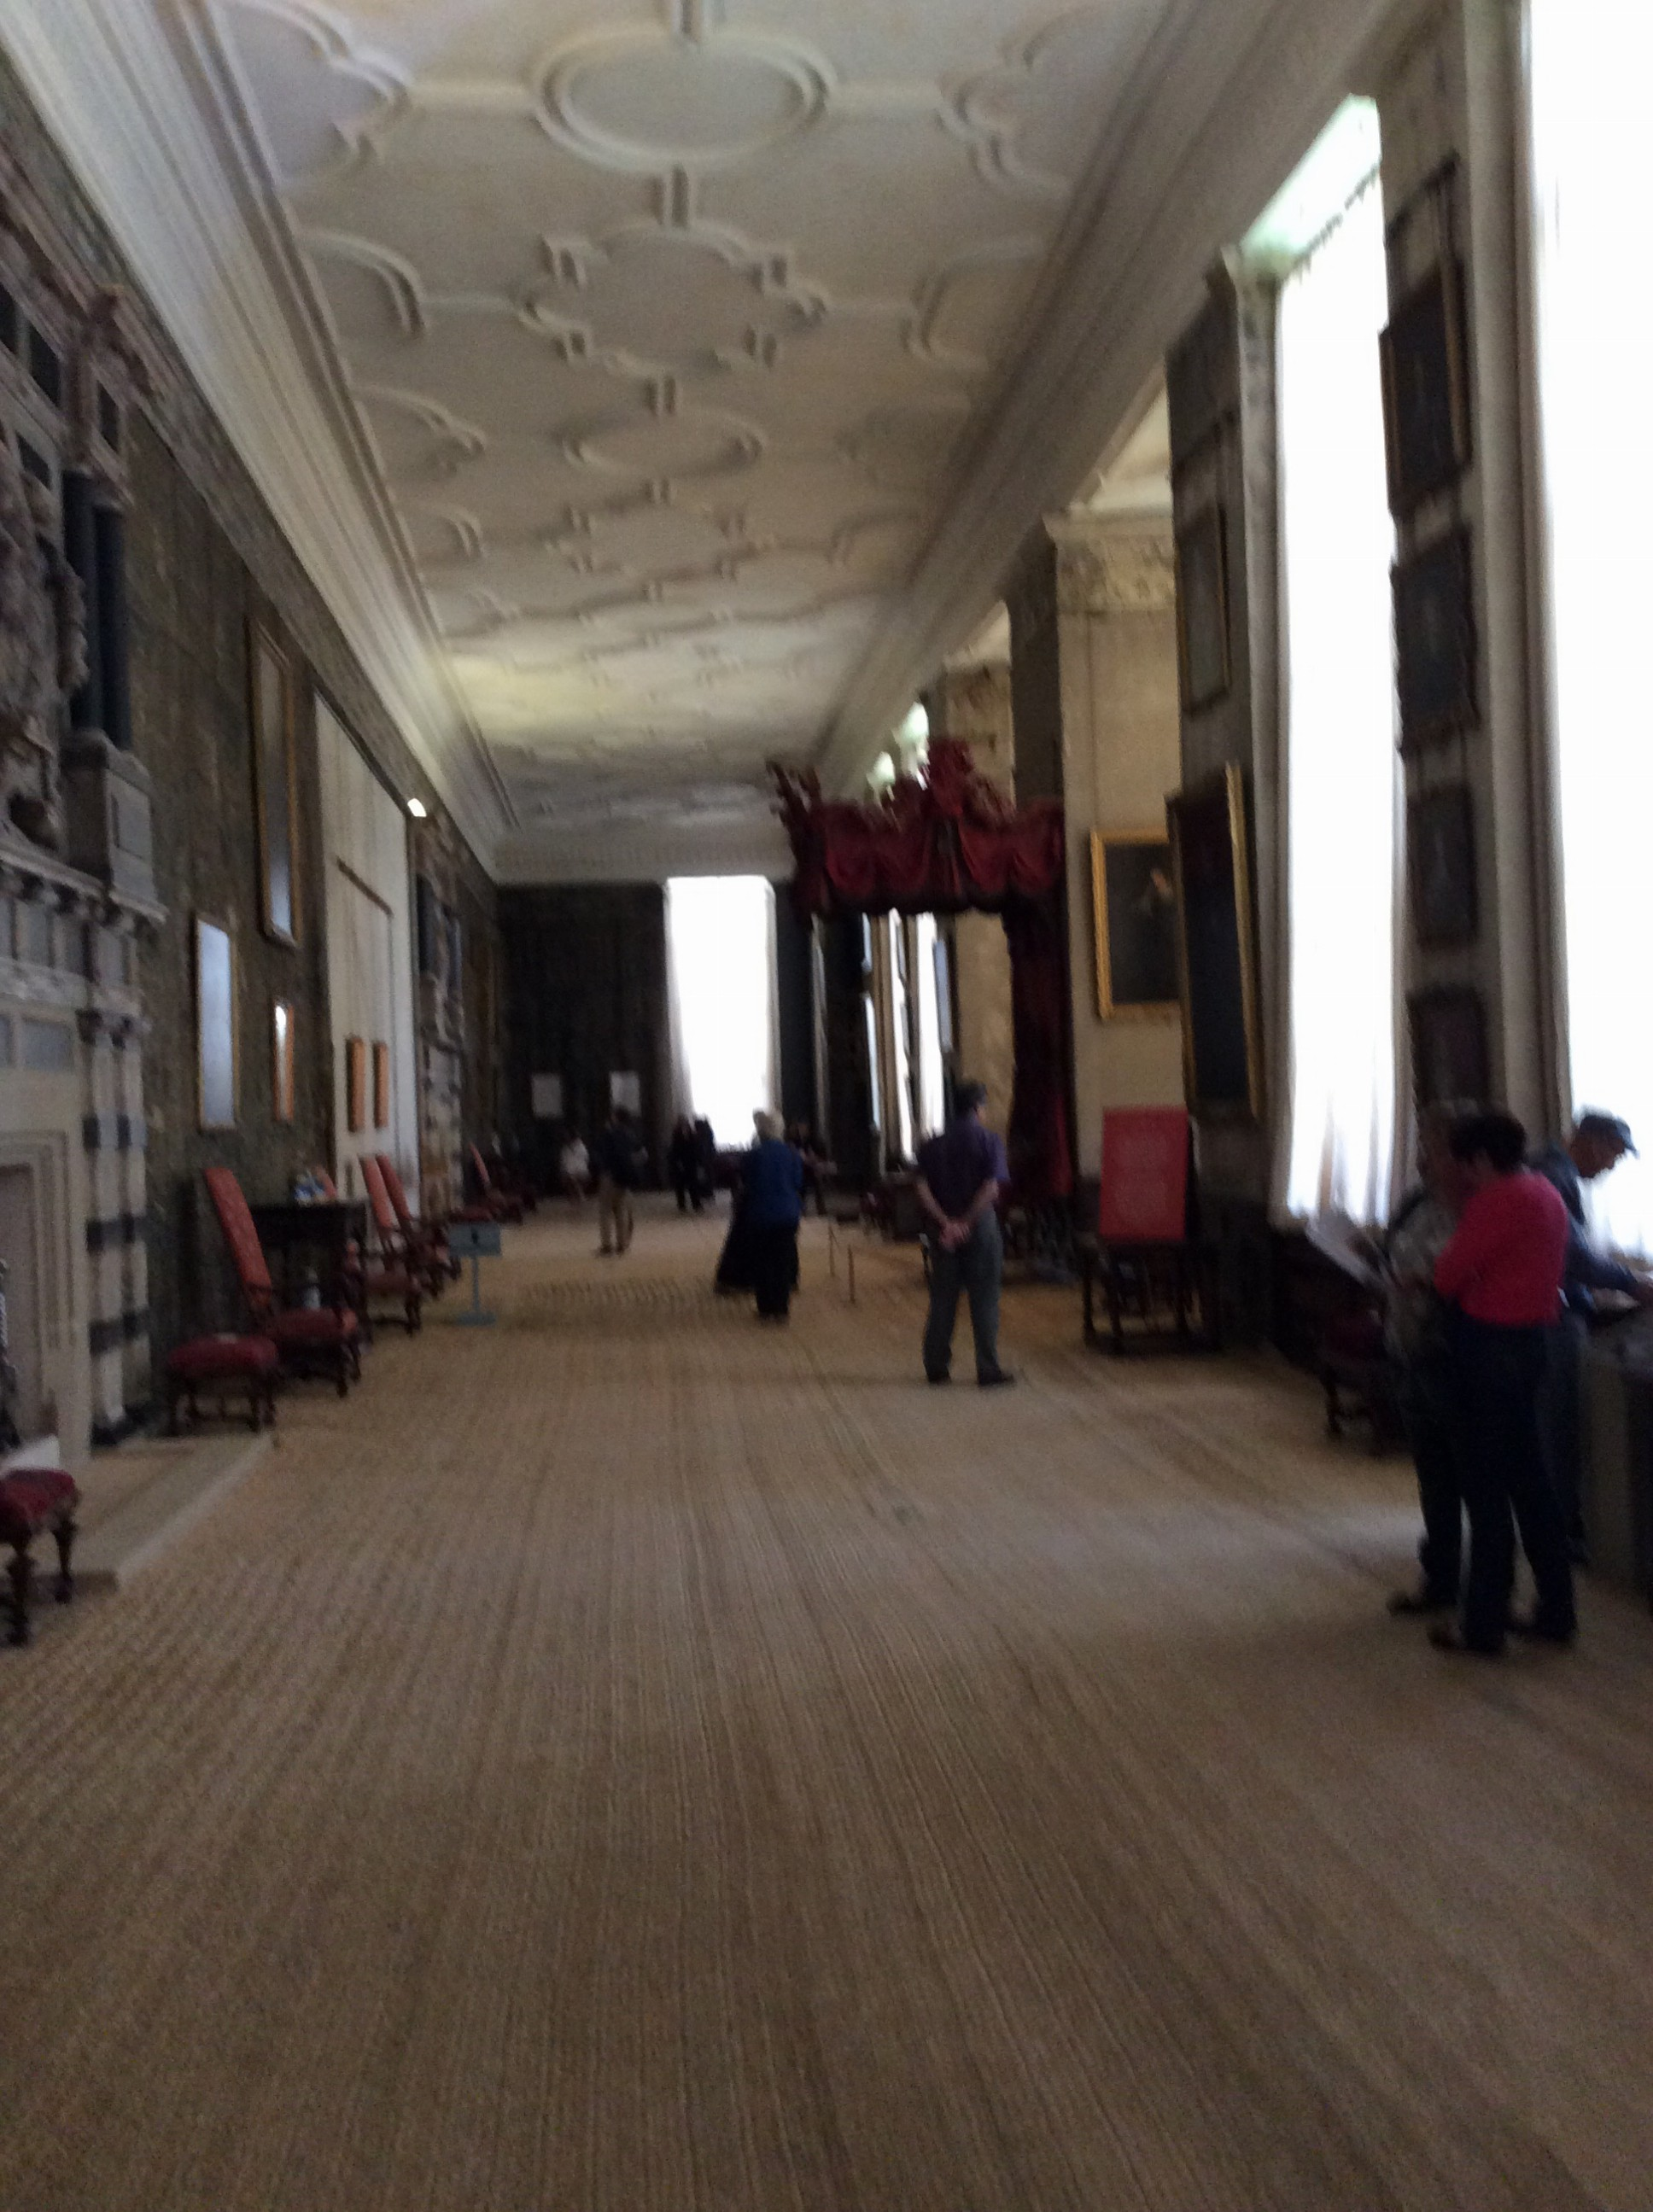 The Long Gallery.